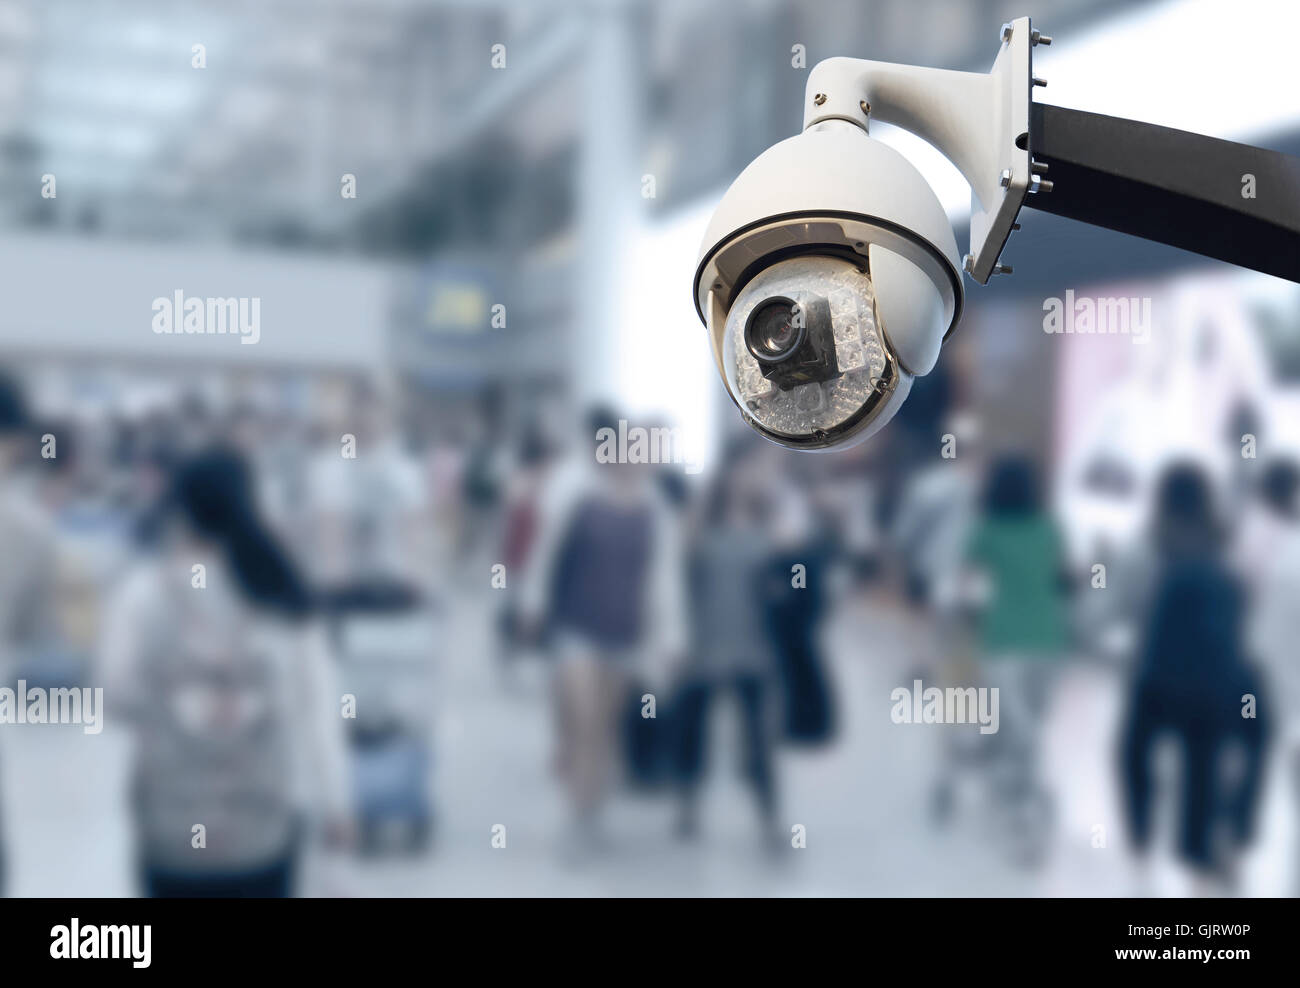 closeup image of CCTV security camera and blurred background - Stock Image